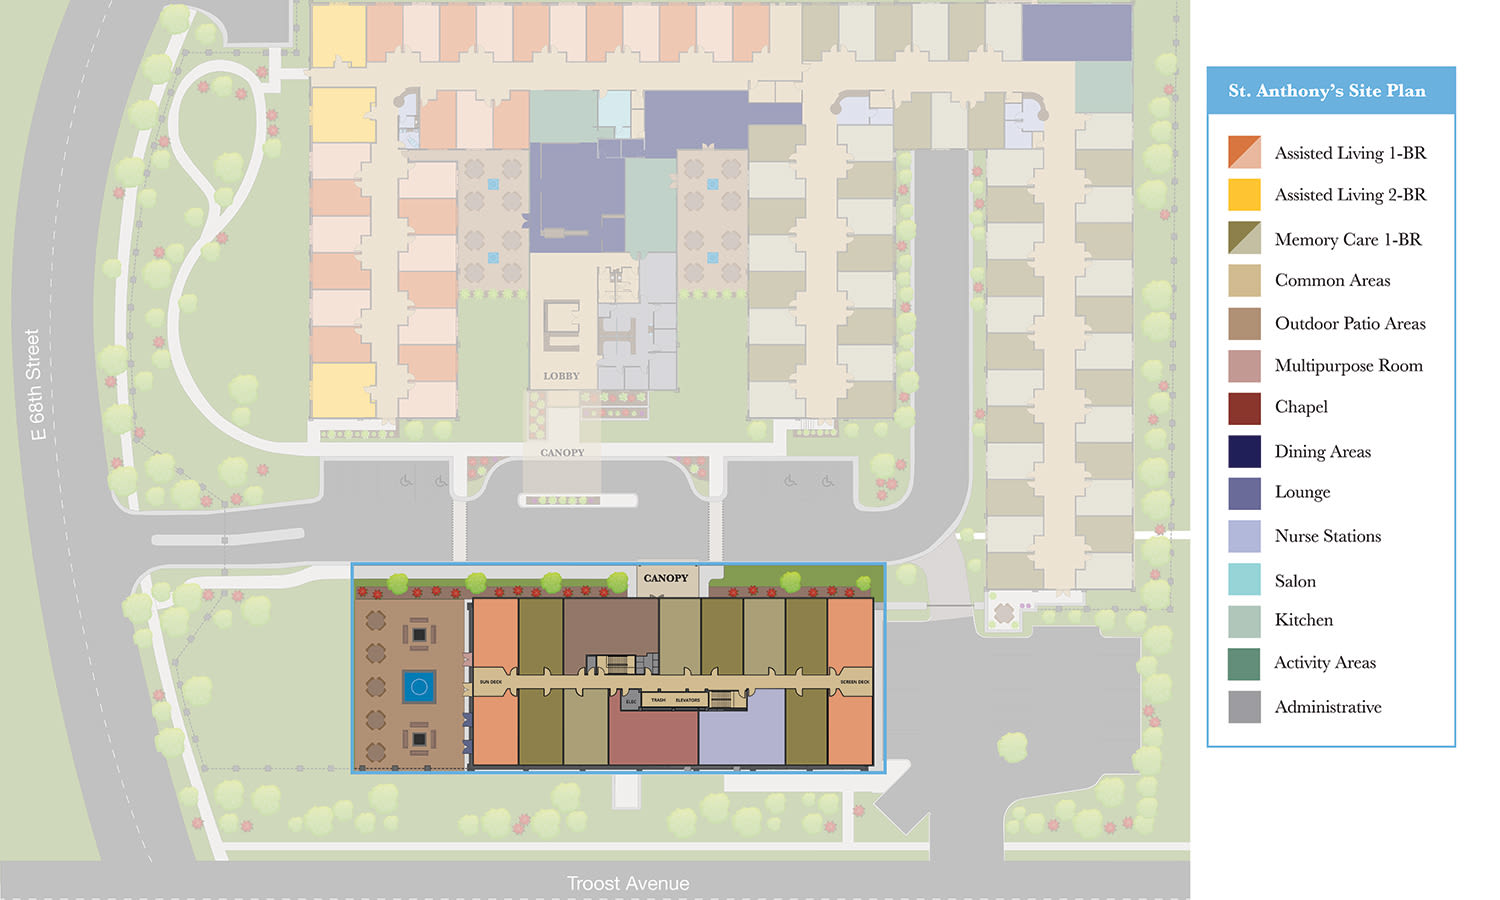 View our Independent Living site plan